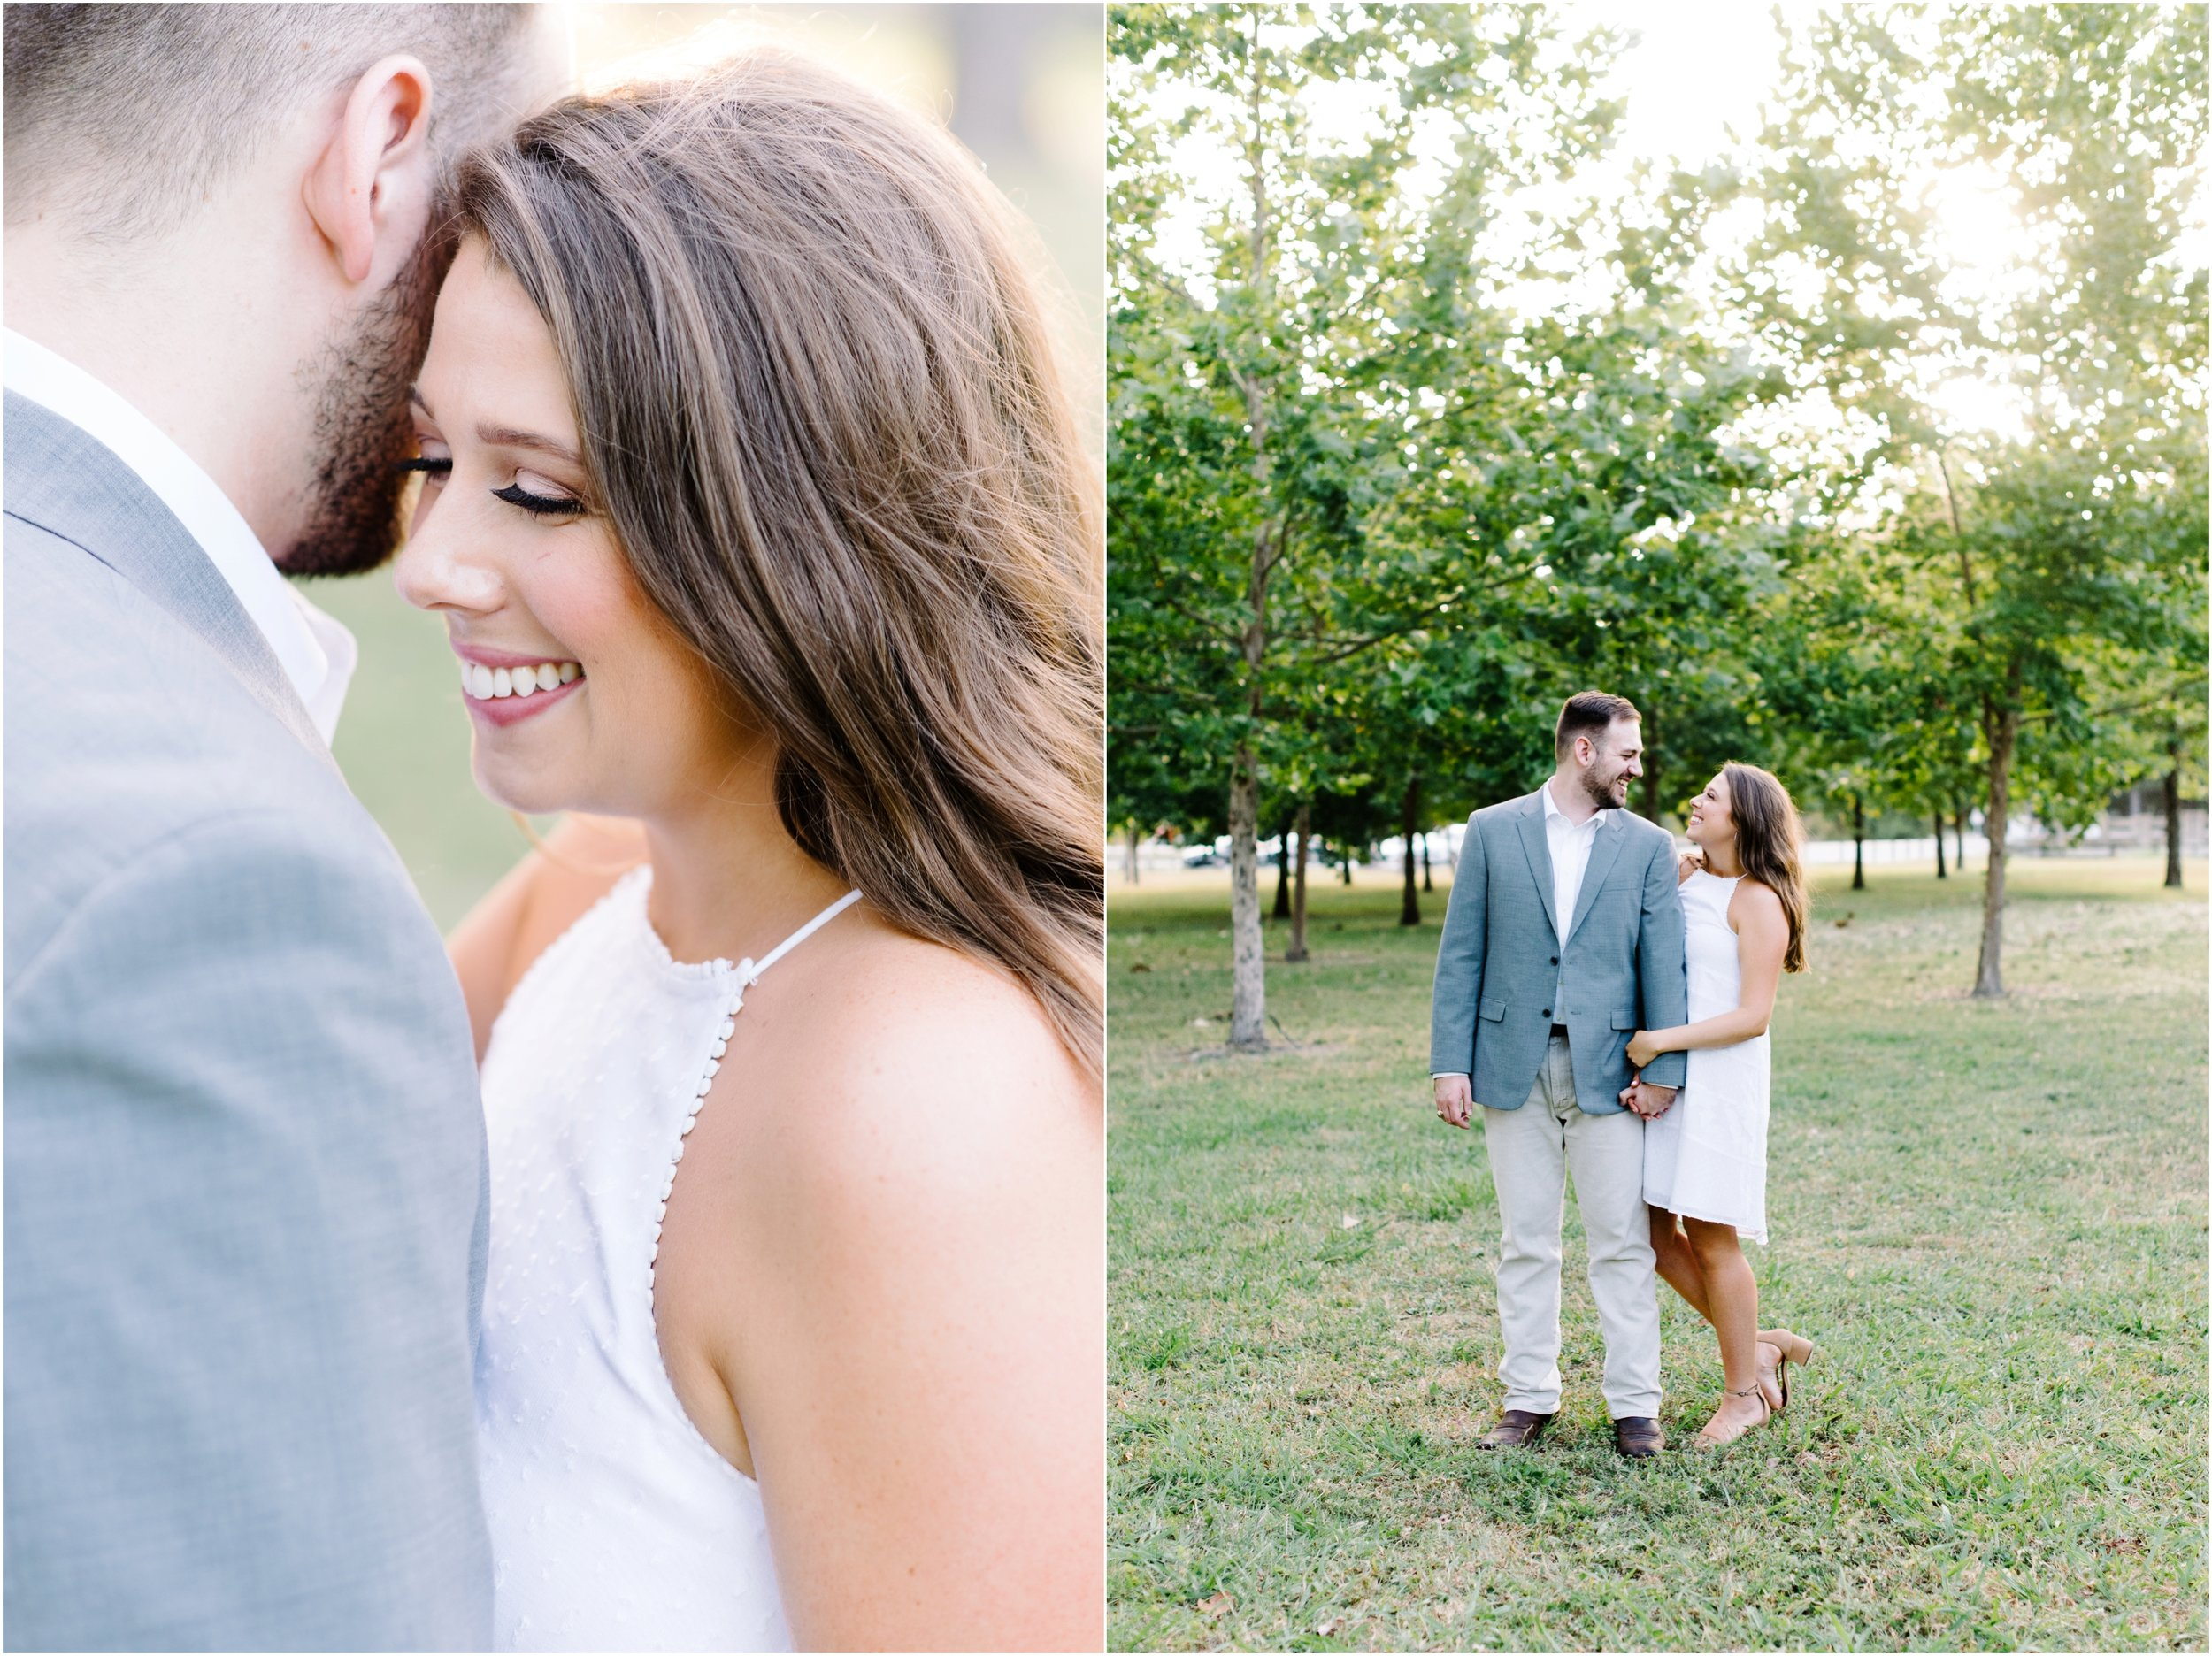 dallasweddingphotographer_texasweddingphotographer_mattandjulieweddings_modernfortworth_fortworthweddingphotographer_0892.jpg